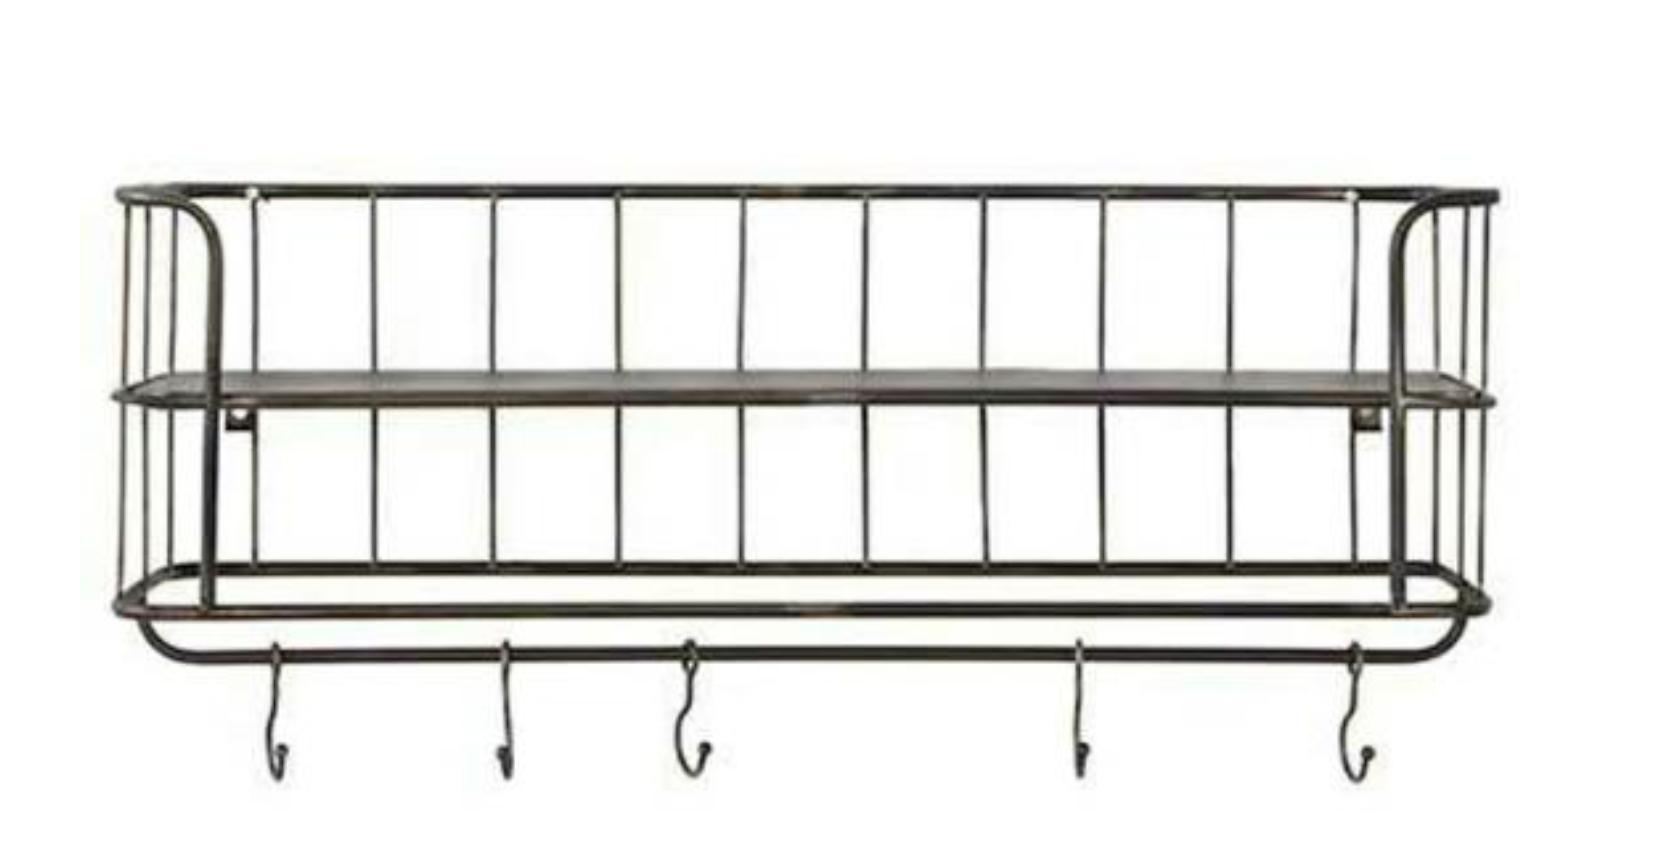 Wood Floating Shelf Wall Mounted, Rustic Wood Storage Shelf with Towel Bar and 8 Removable Hooks, Metal Wire Display Racks for Organize Cooking Utensils or Mugs